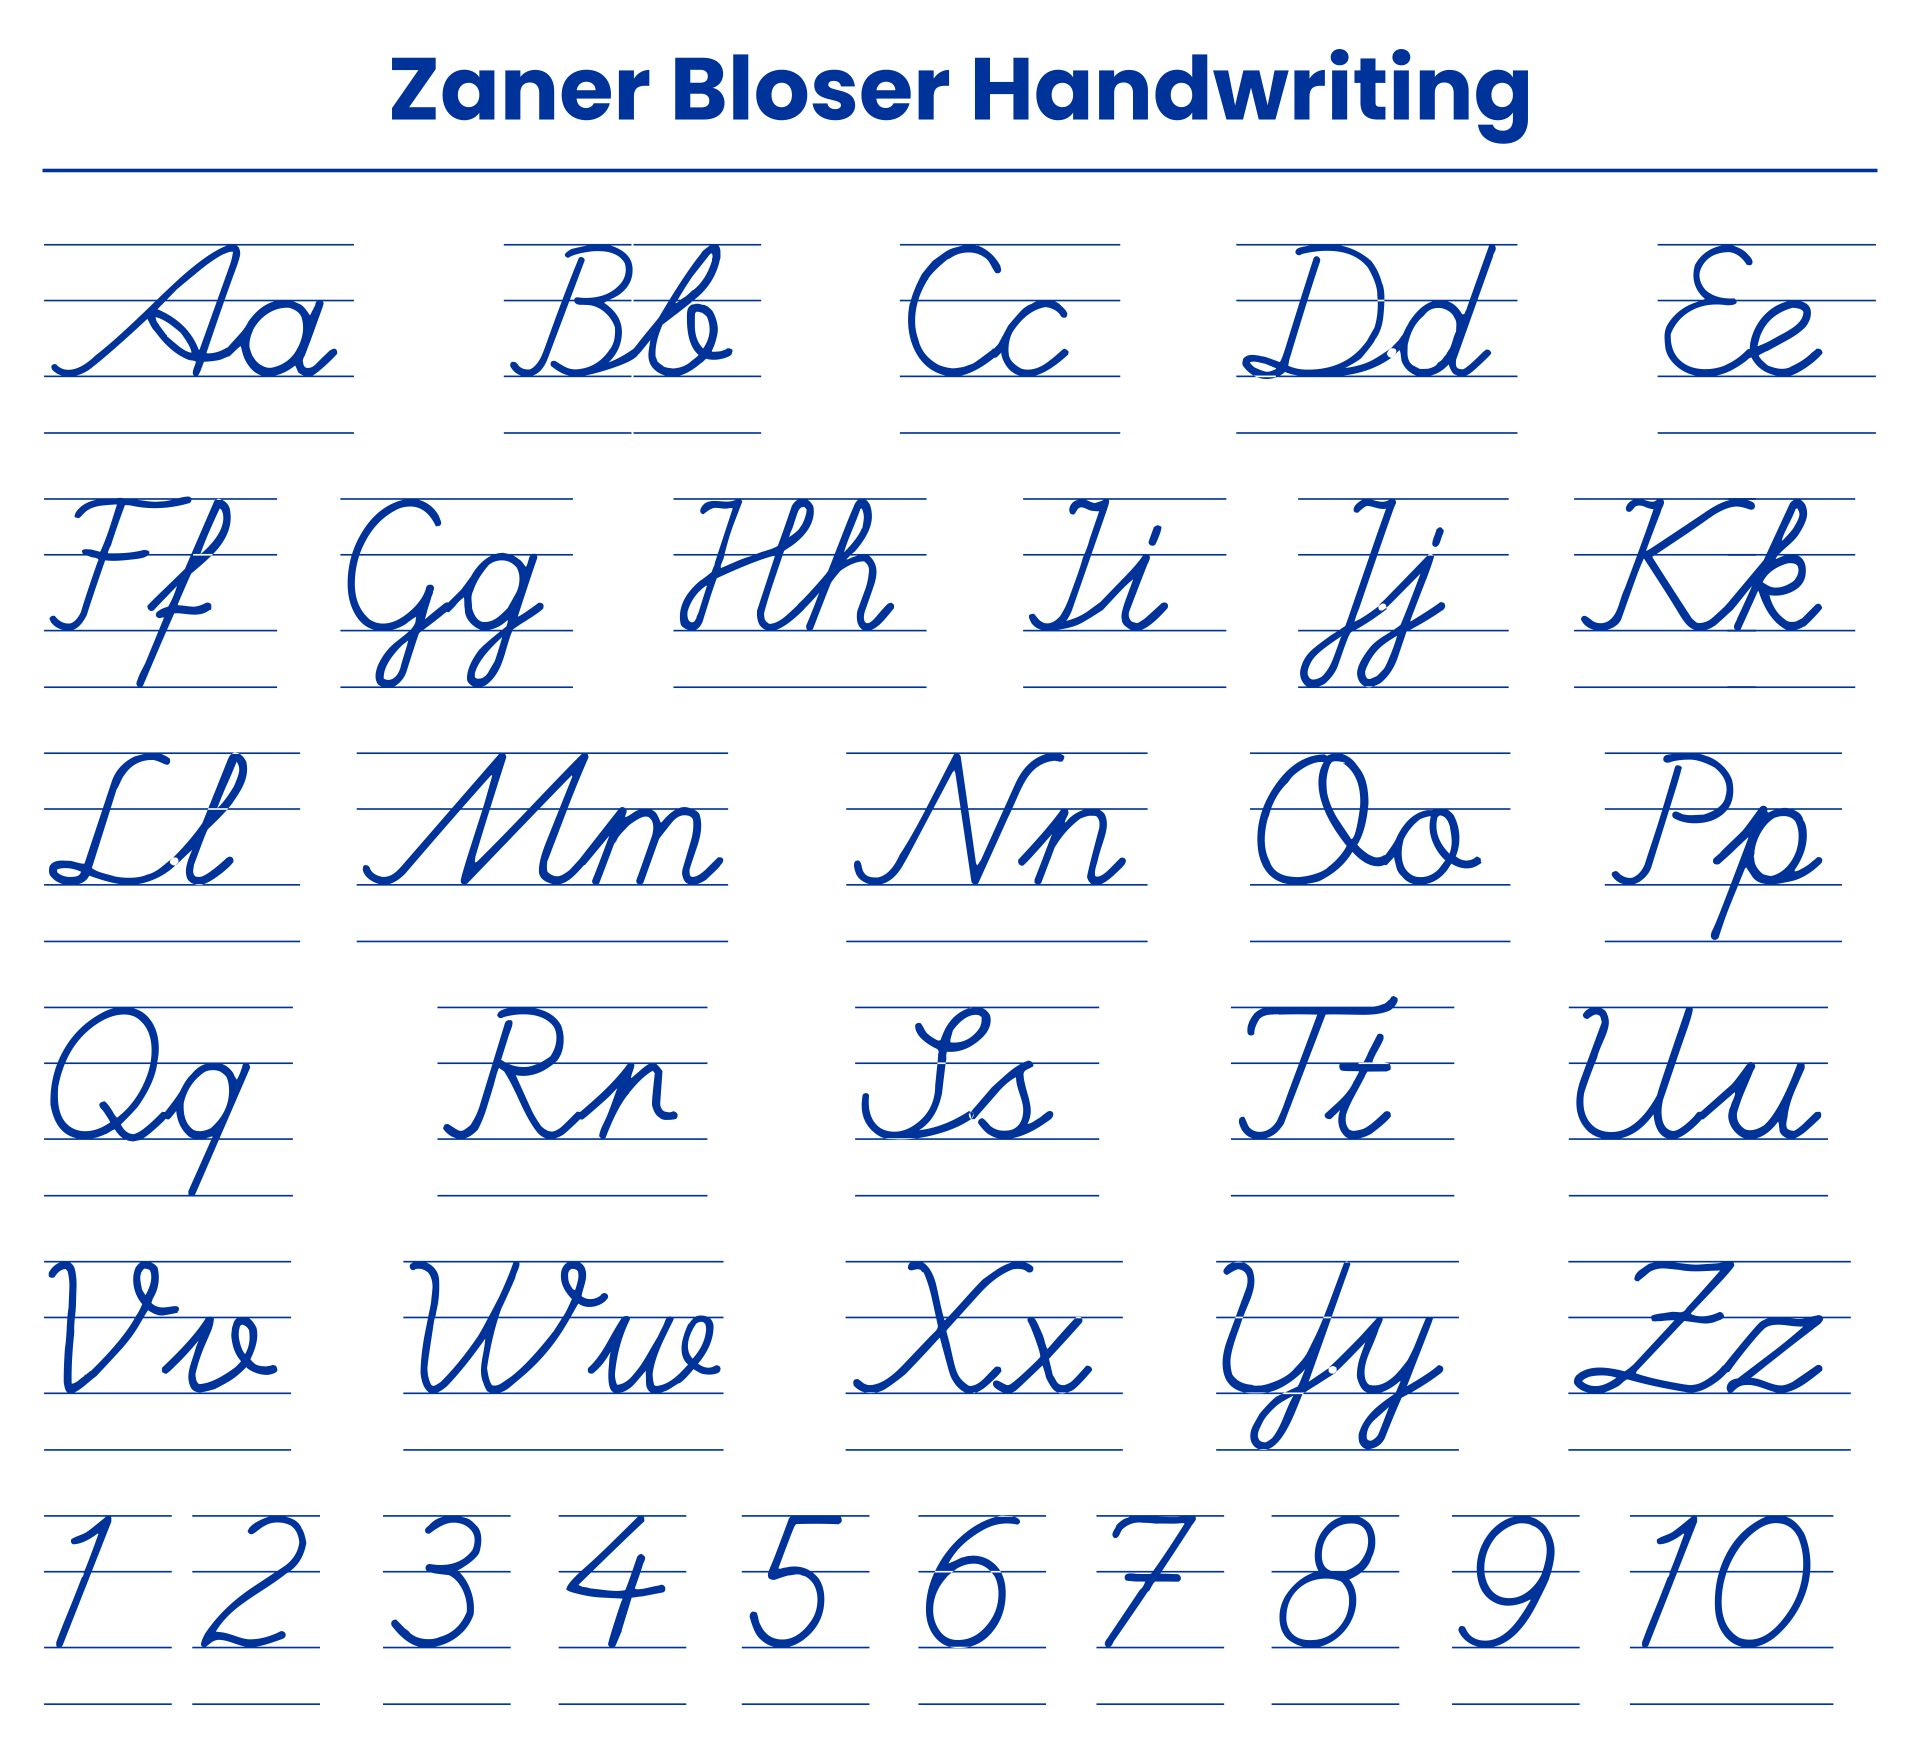 zaner bloser writing These fonts are perfect for making custom worksheets for teaching handwriting at any level, for teachers or parents zaner-bloser style (set zb) features: connected fonts connect as you type.